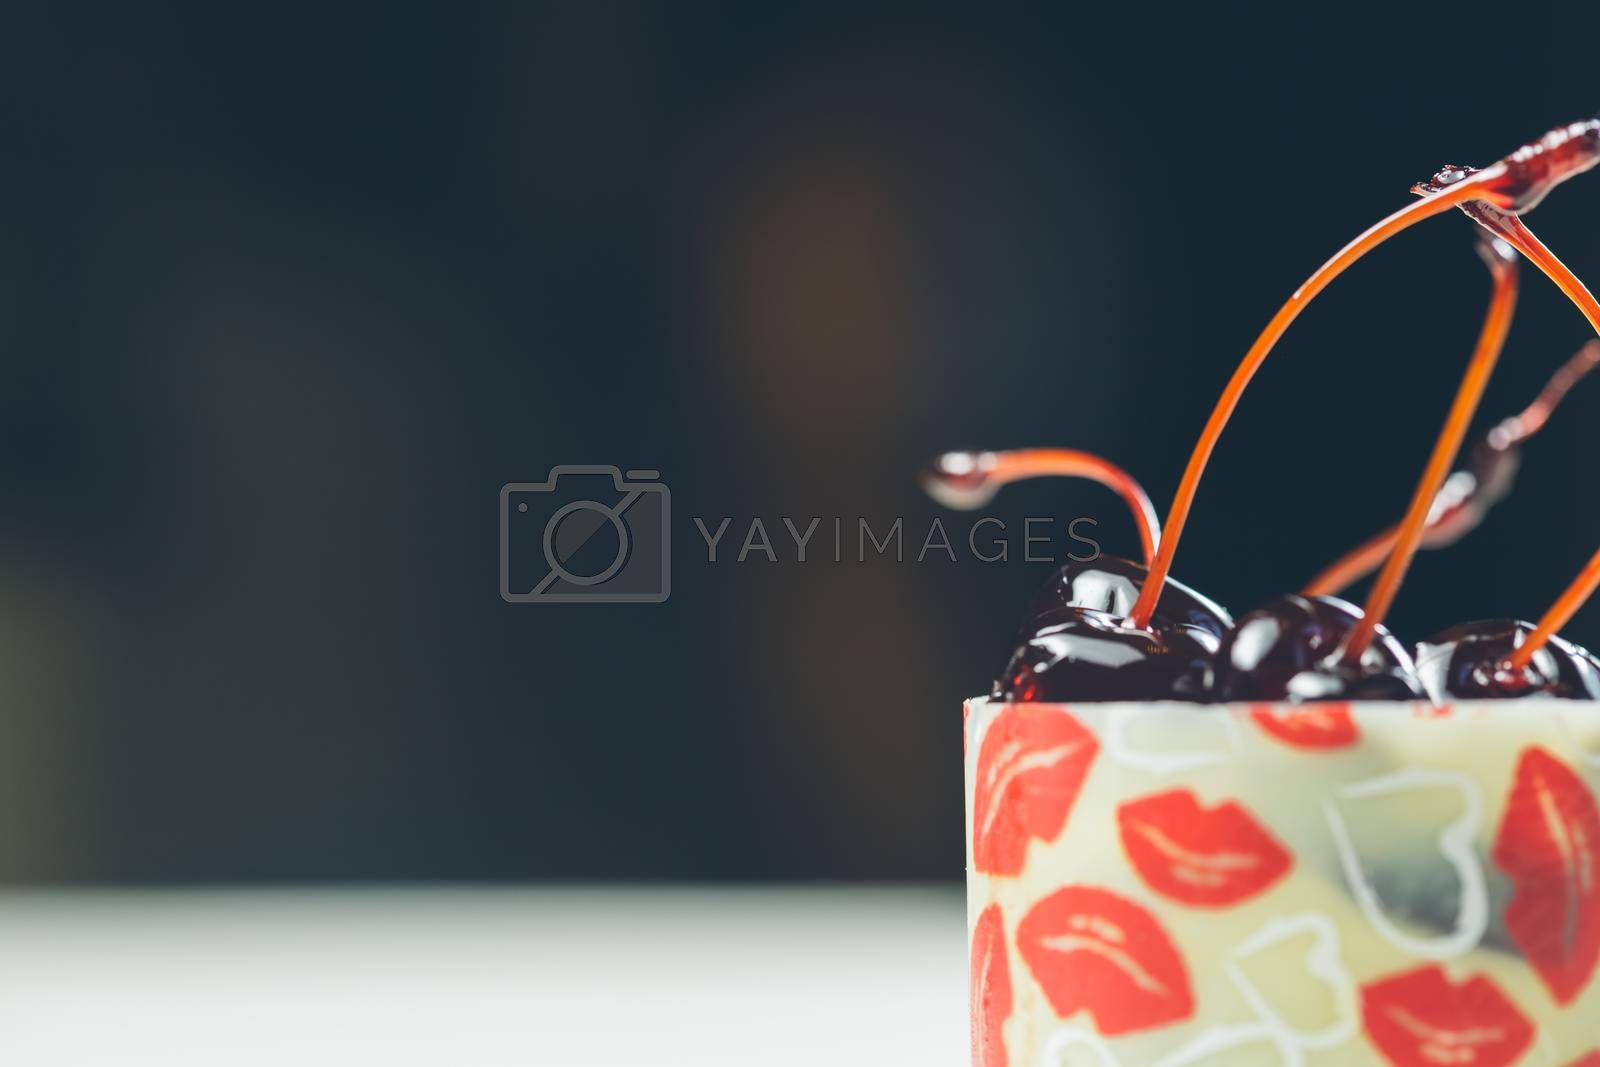 Royalty free image of vanilla dessert with cherry confiture by sarymsakov